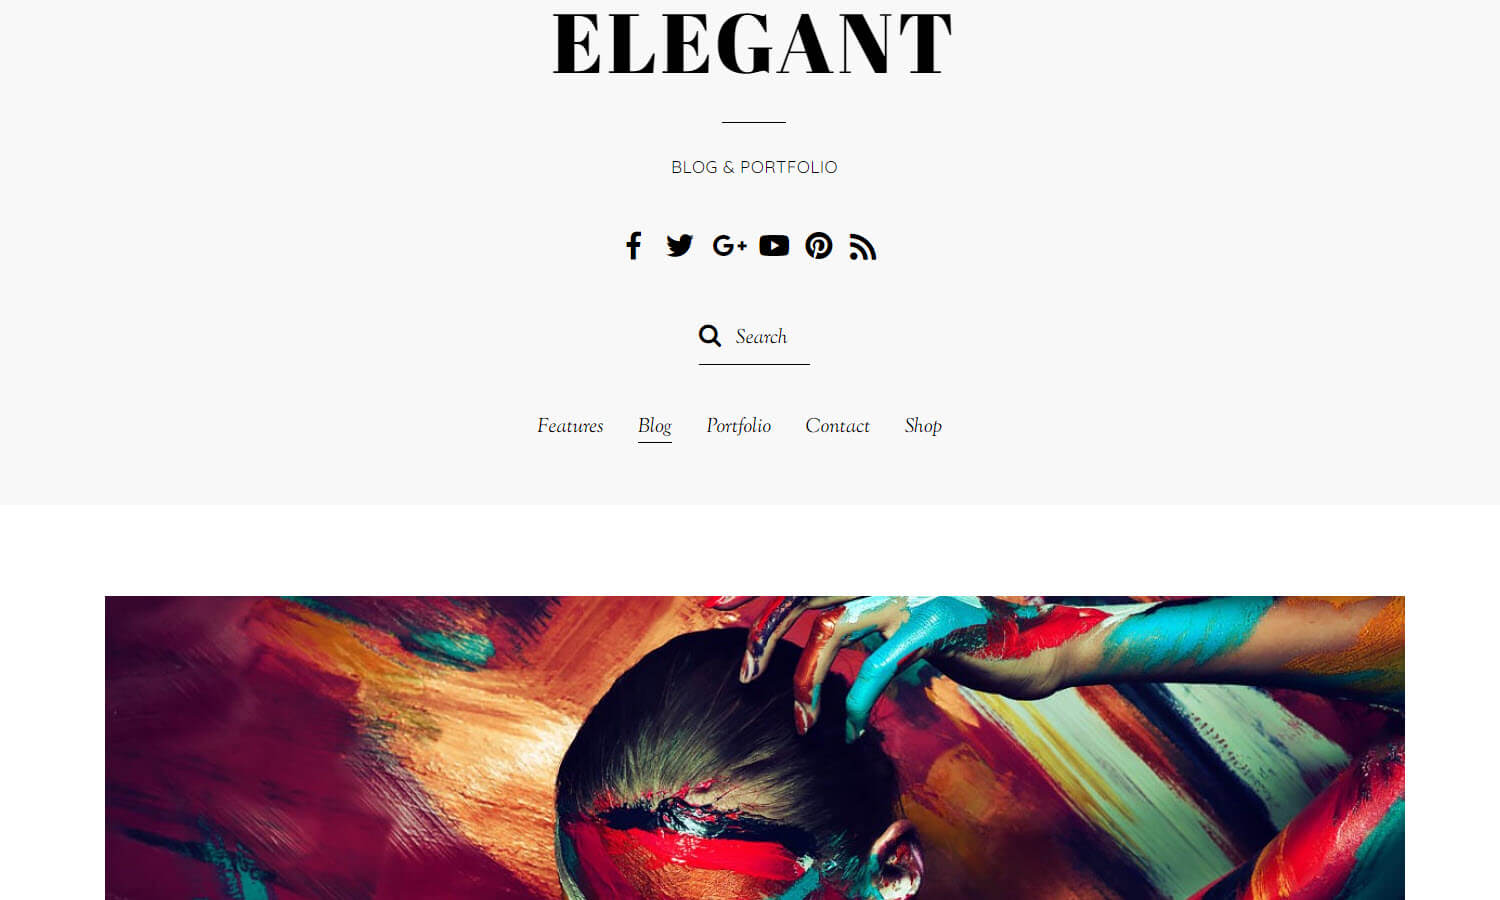 Elegant screenshot